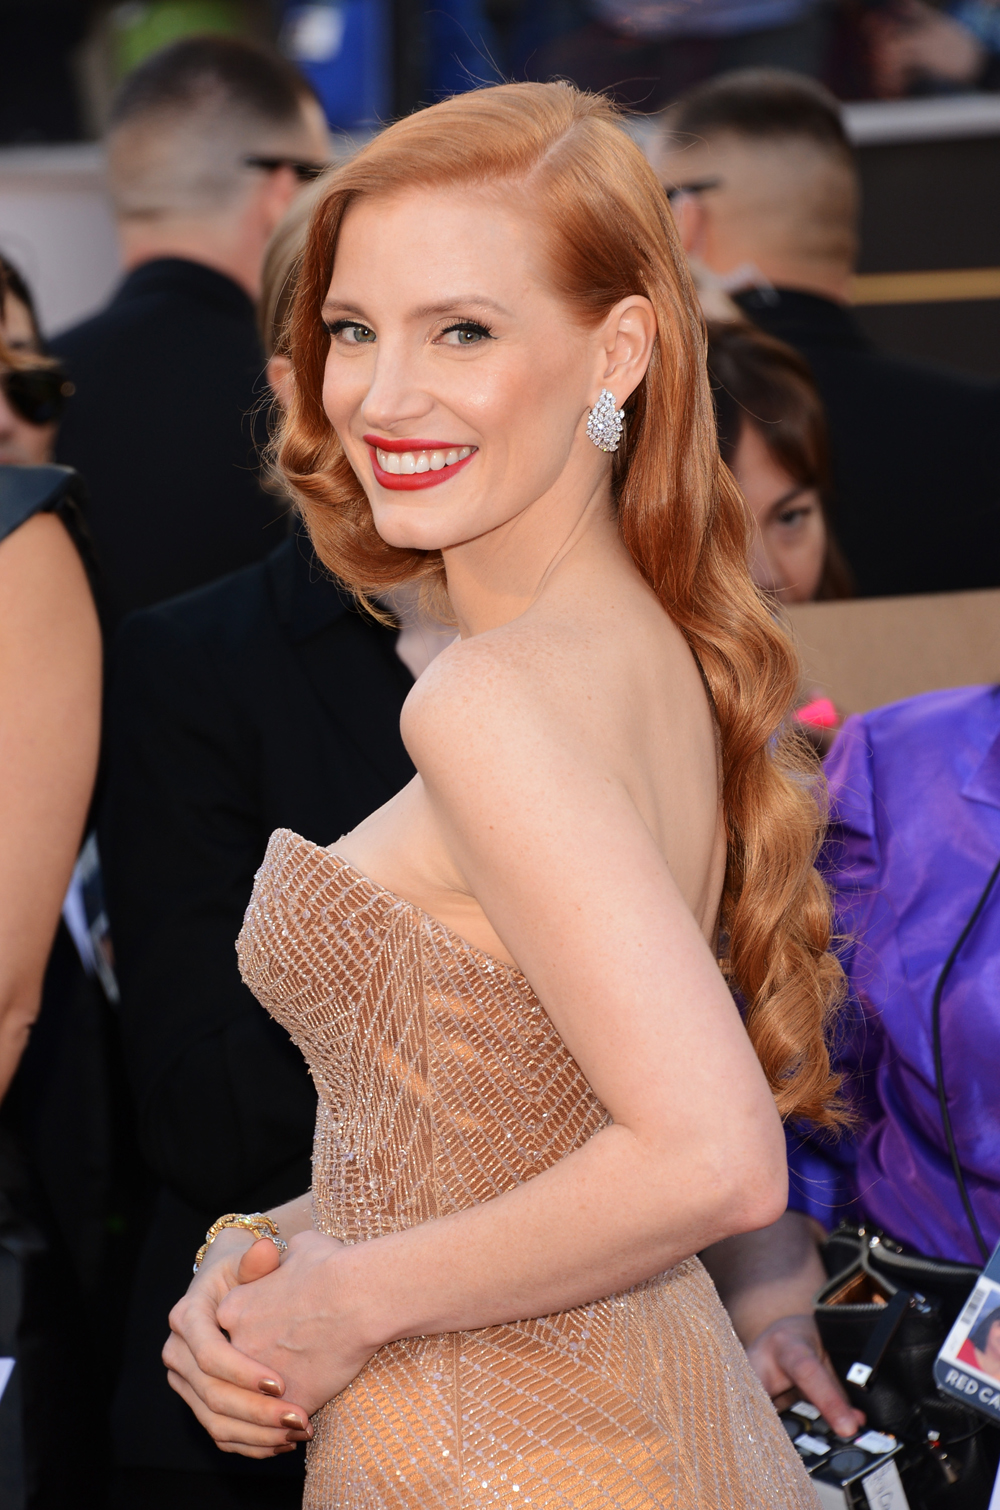 THE OSCARS: Jessica Chastain's Hollywood Glam Waves